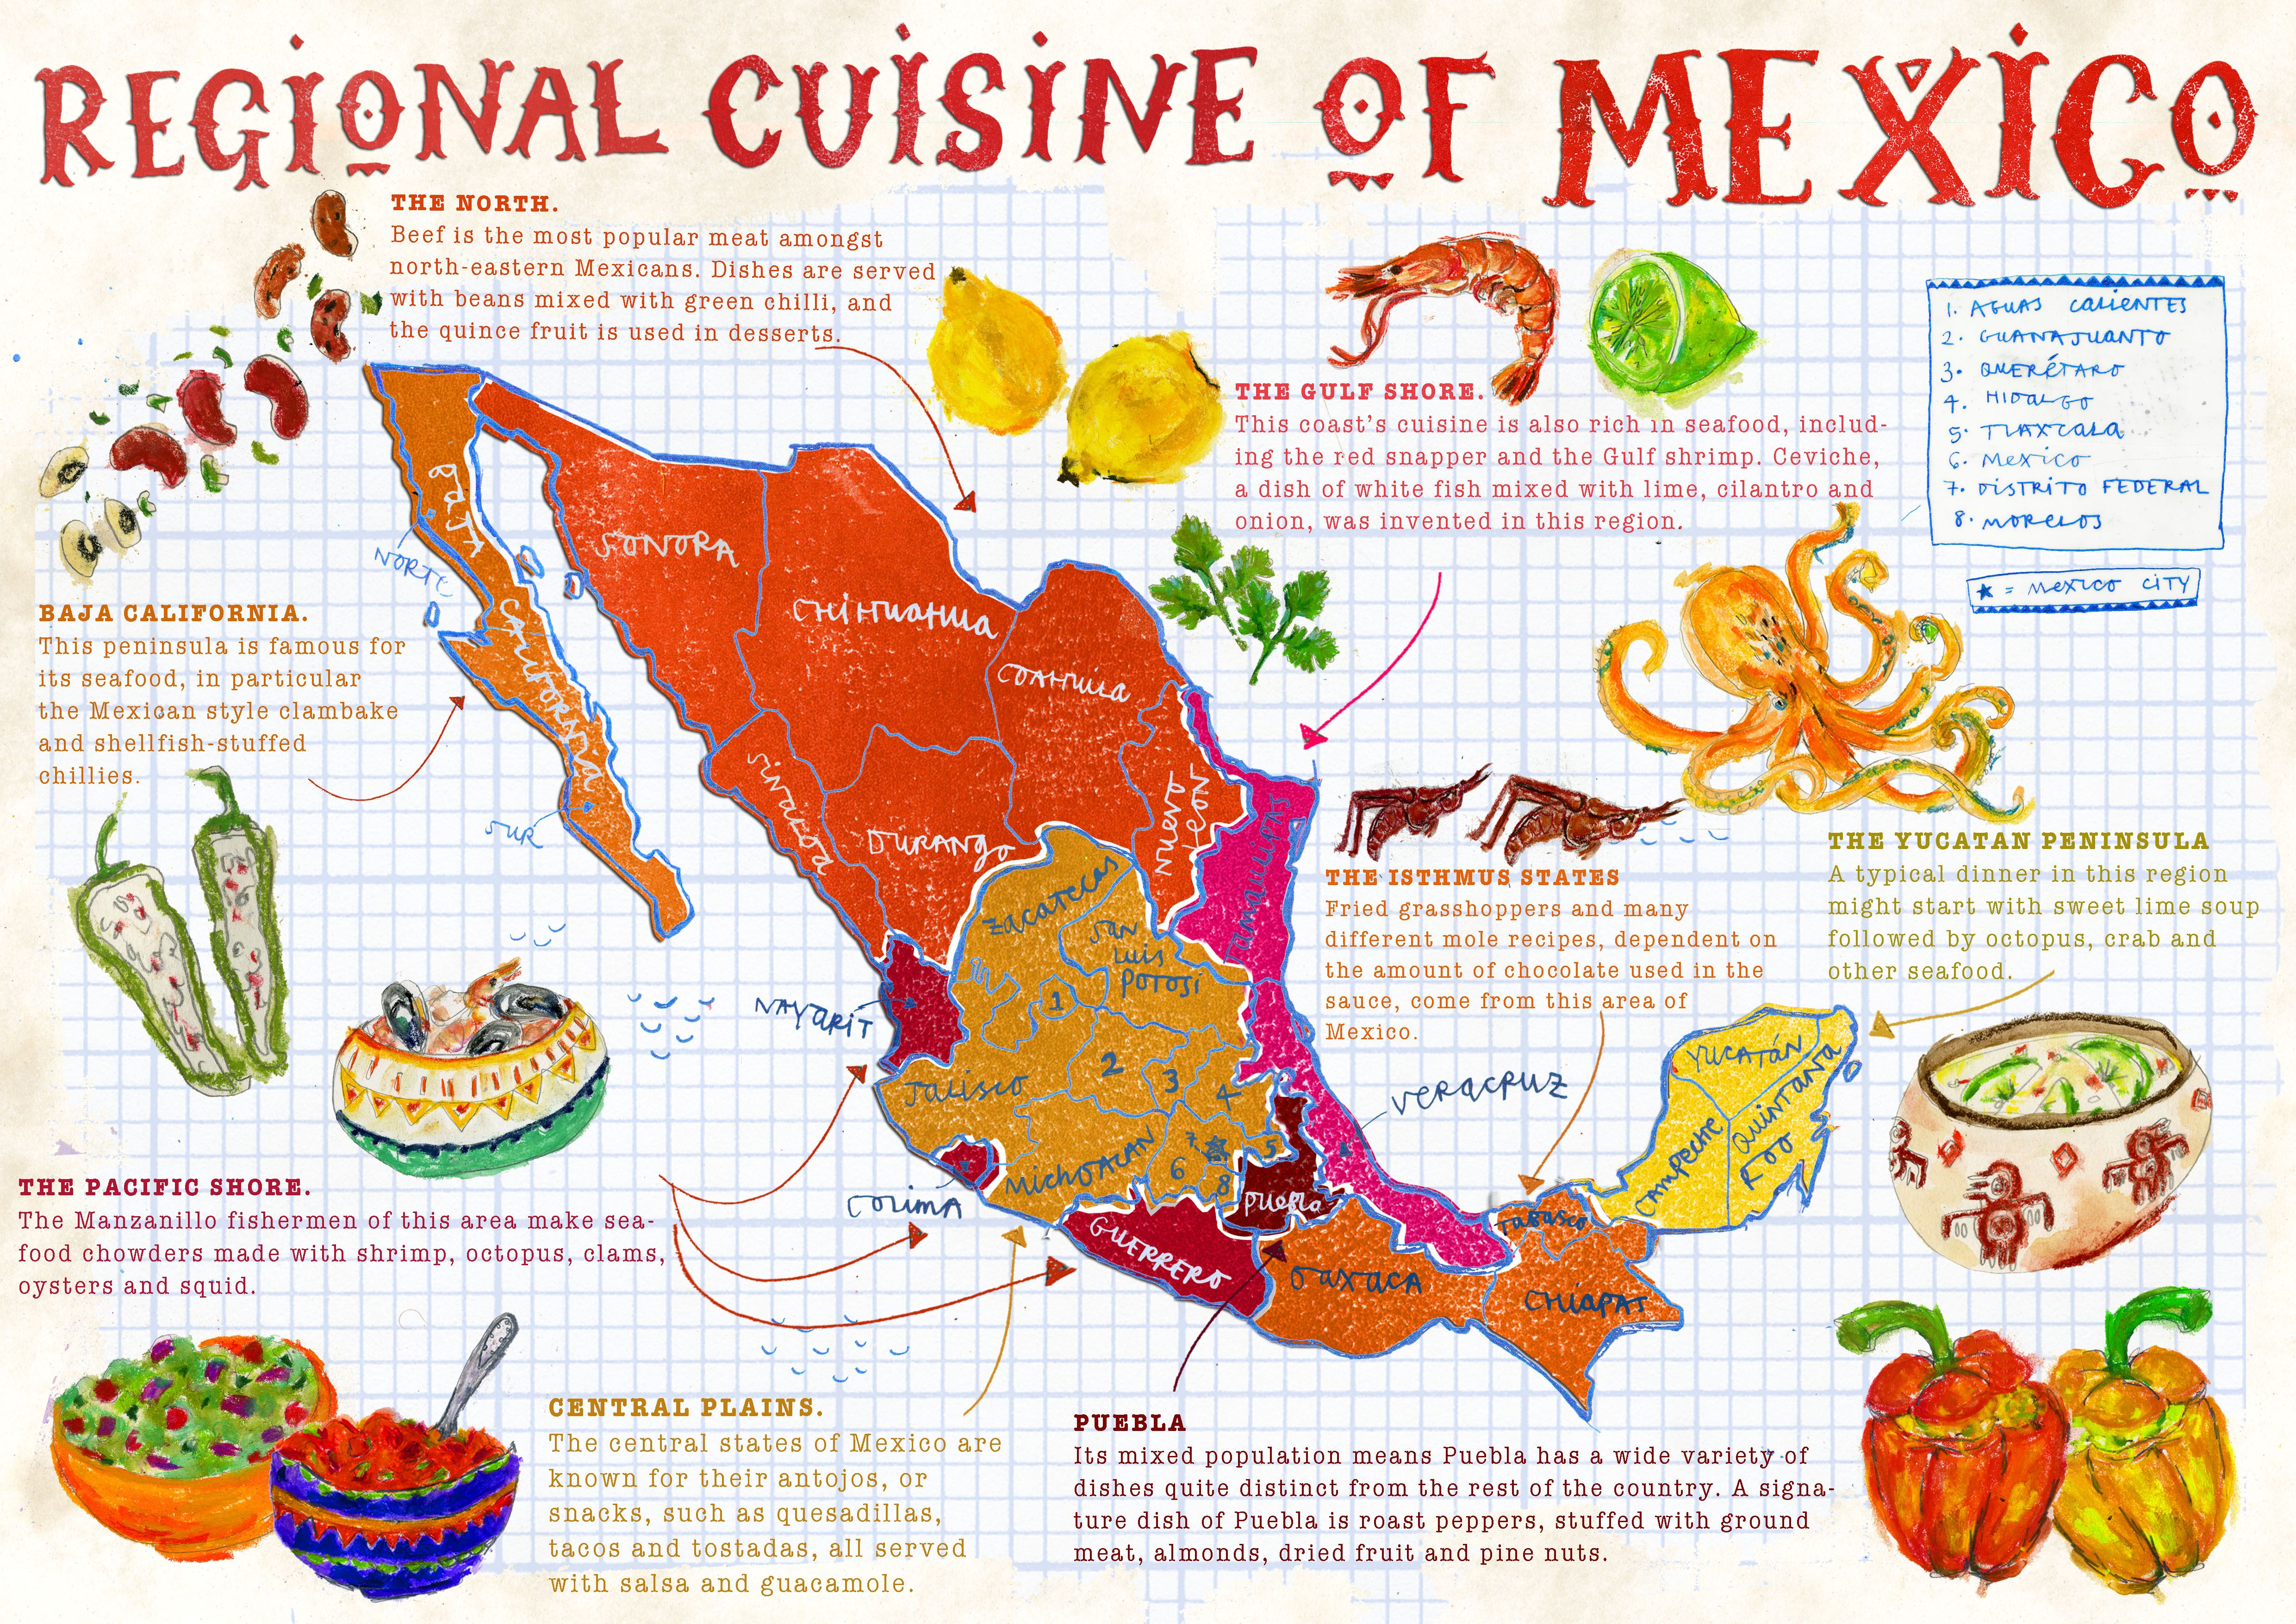 Lisa Prisk - Map of Mexico showing the regional cuisine